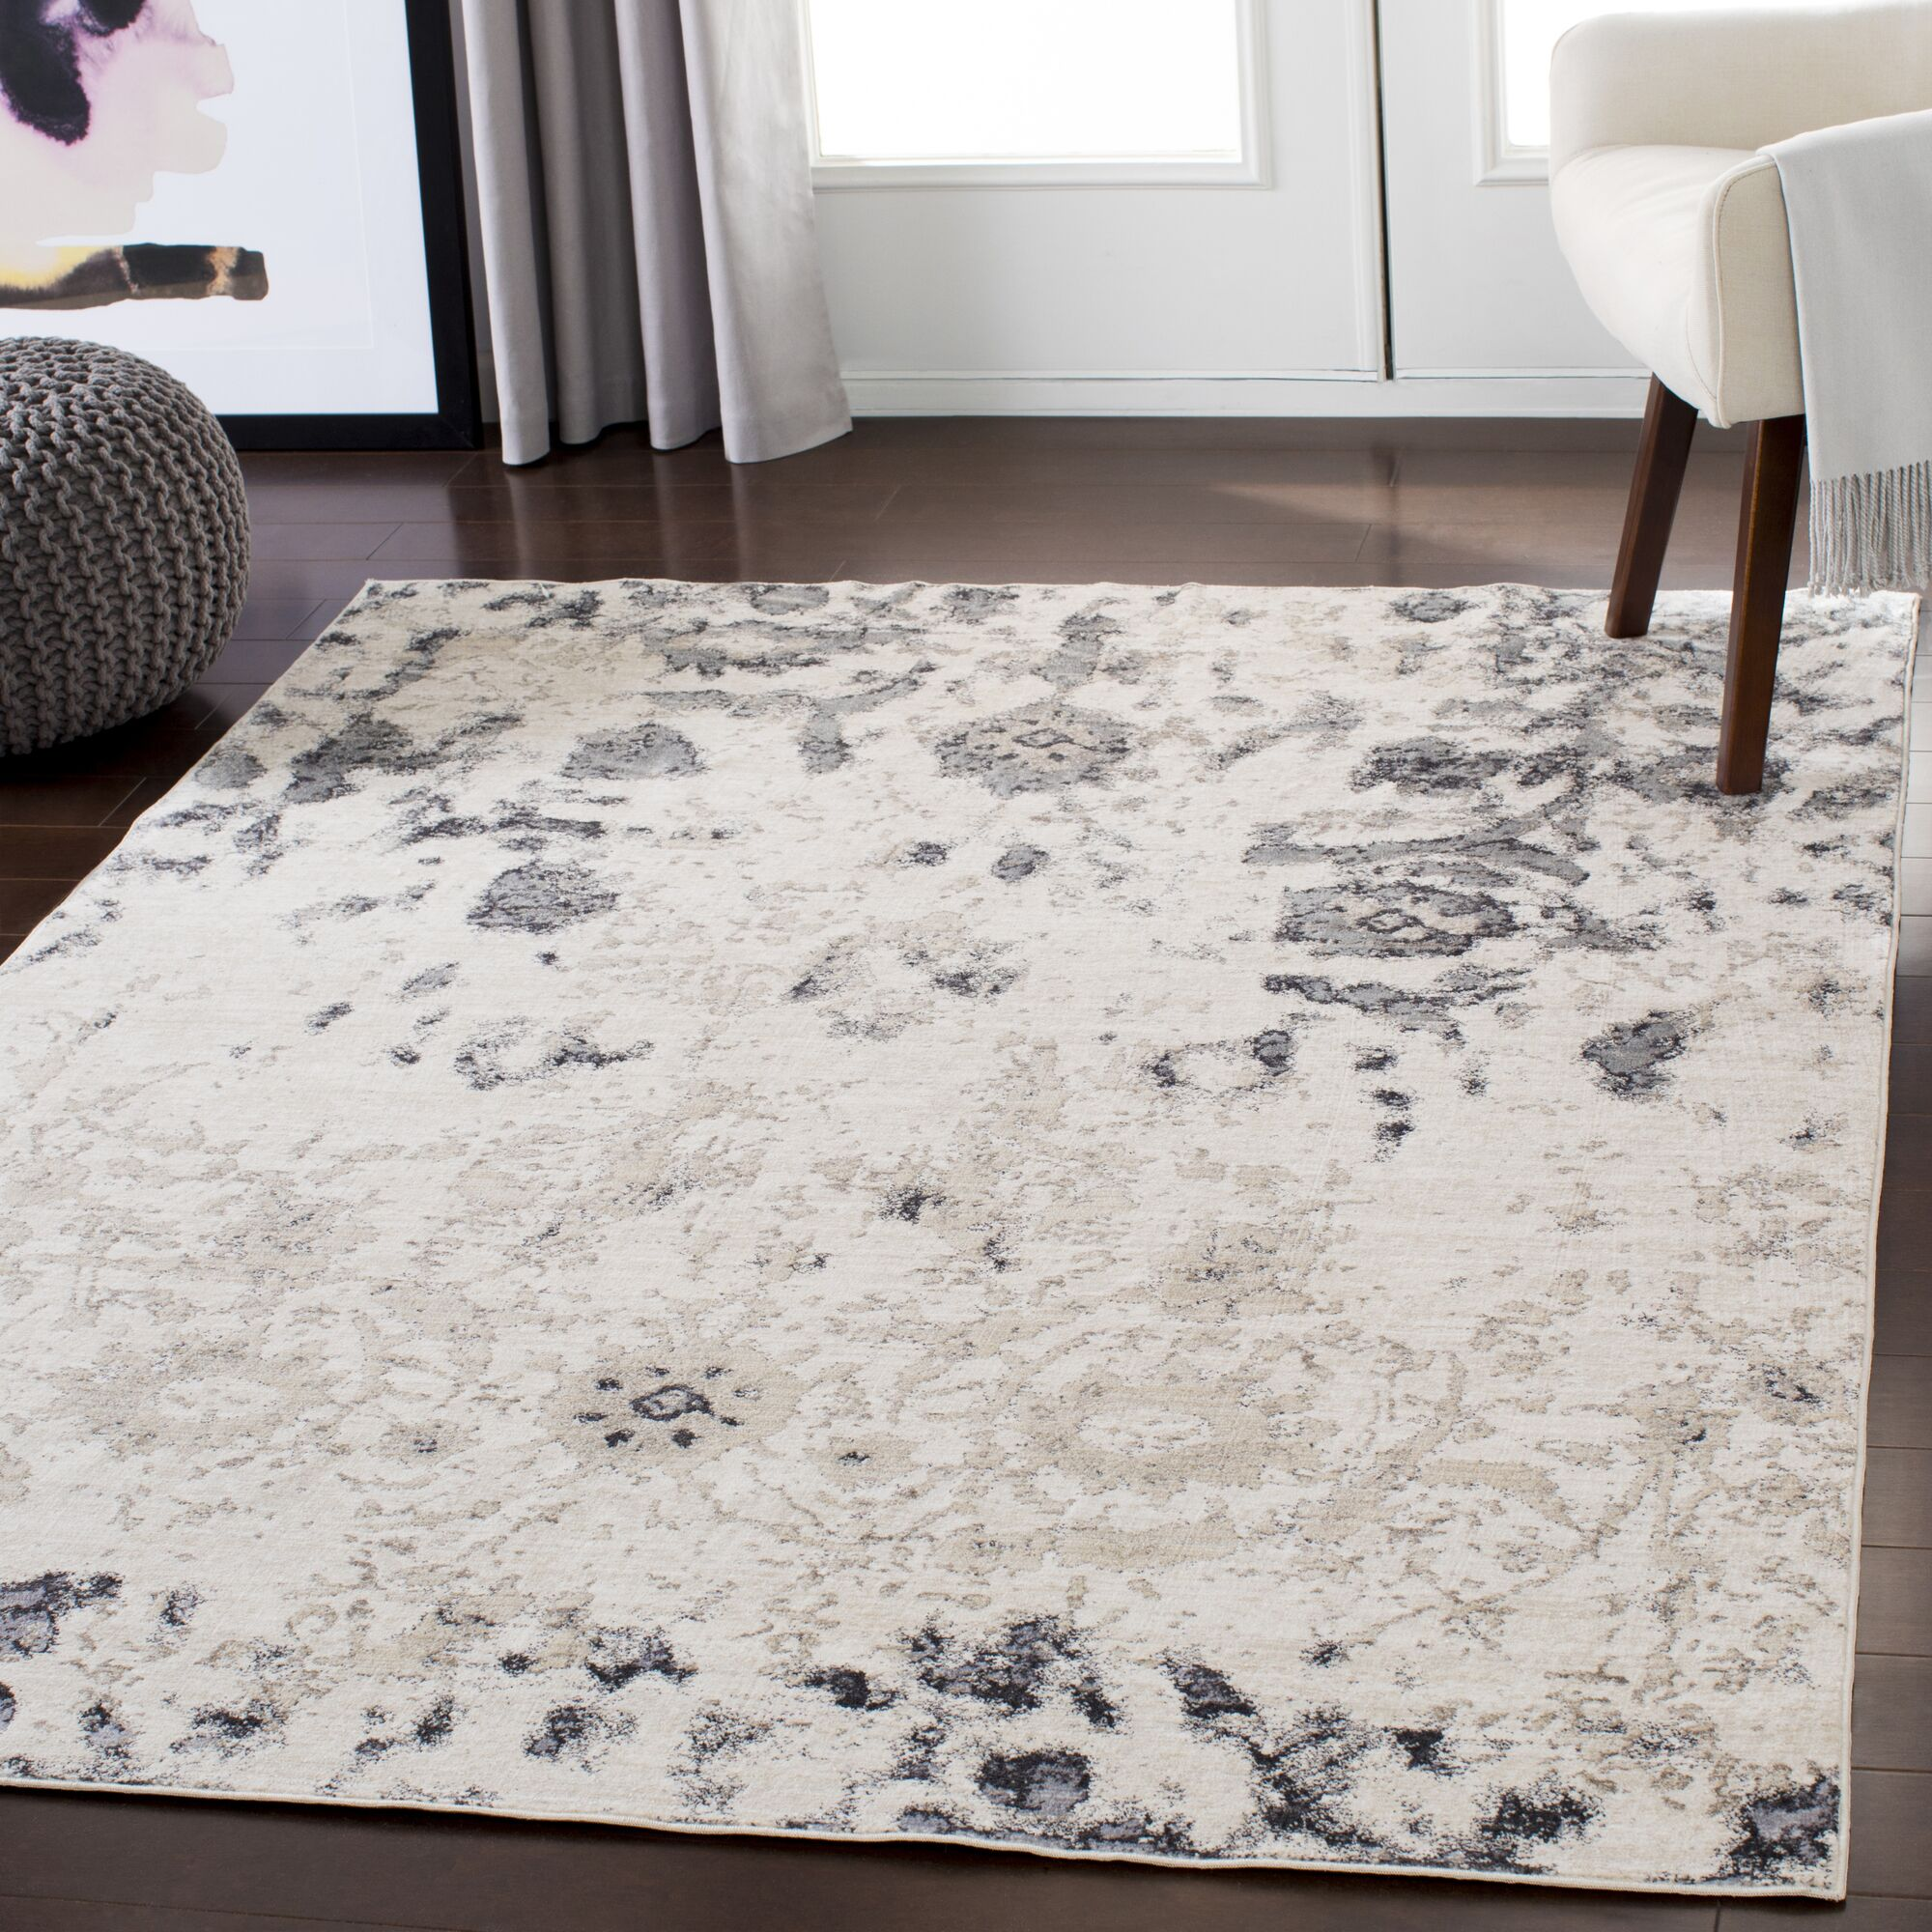 Stephan Distressed Beige/Taupe Area Rug Rug Size: Rectangle 5'3